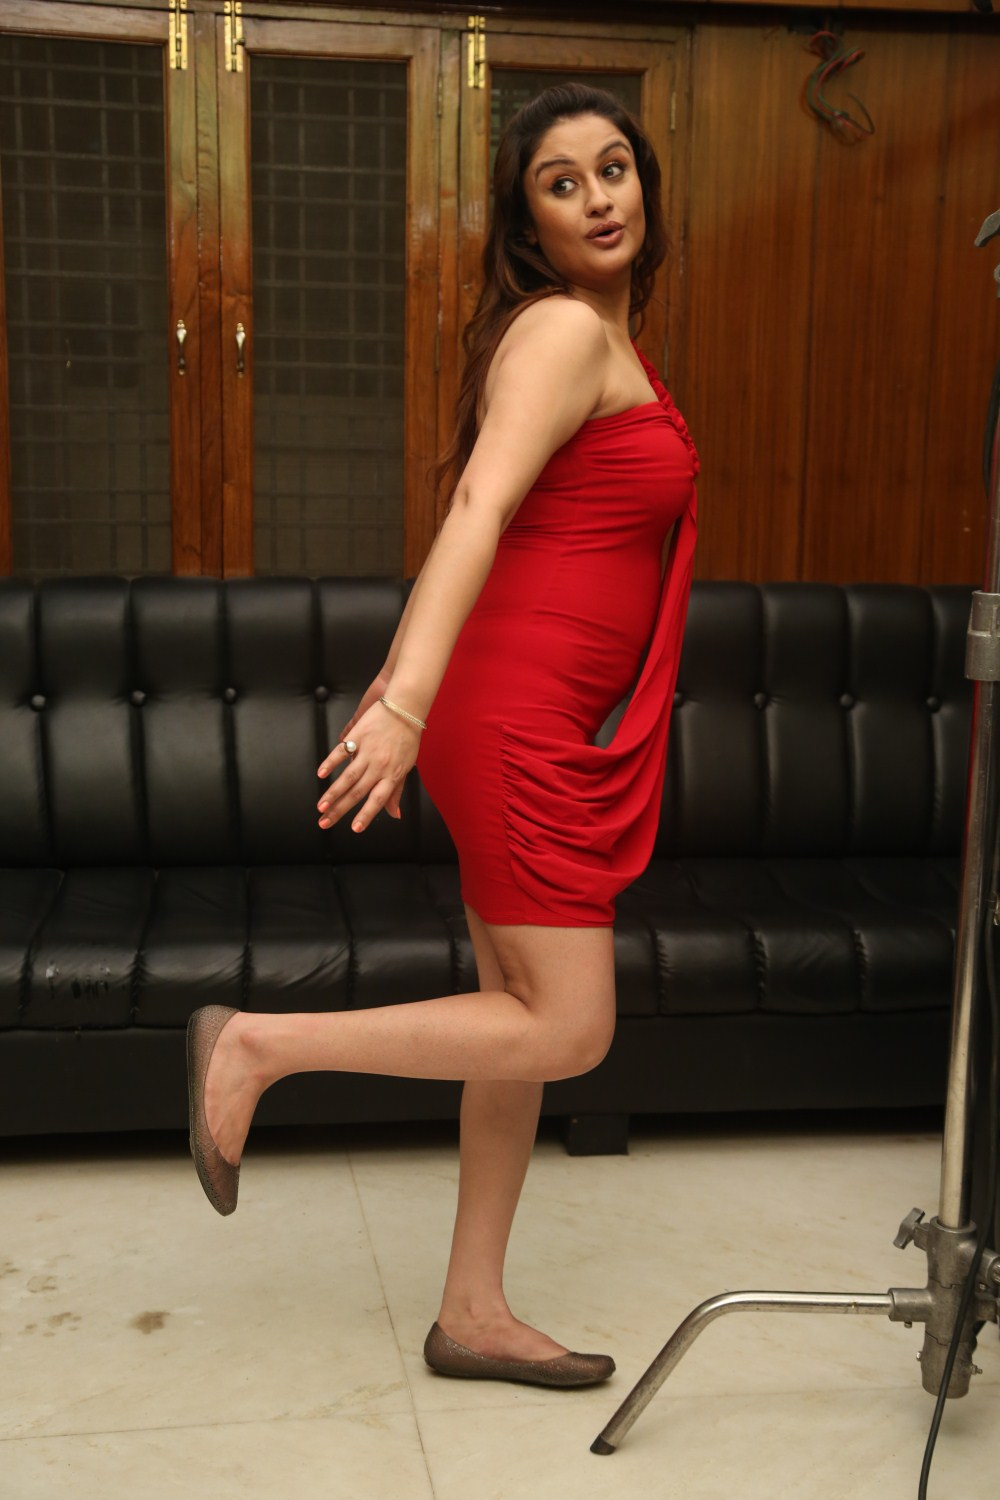 Sonia Red naked 571